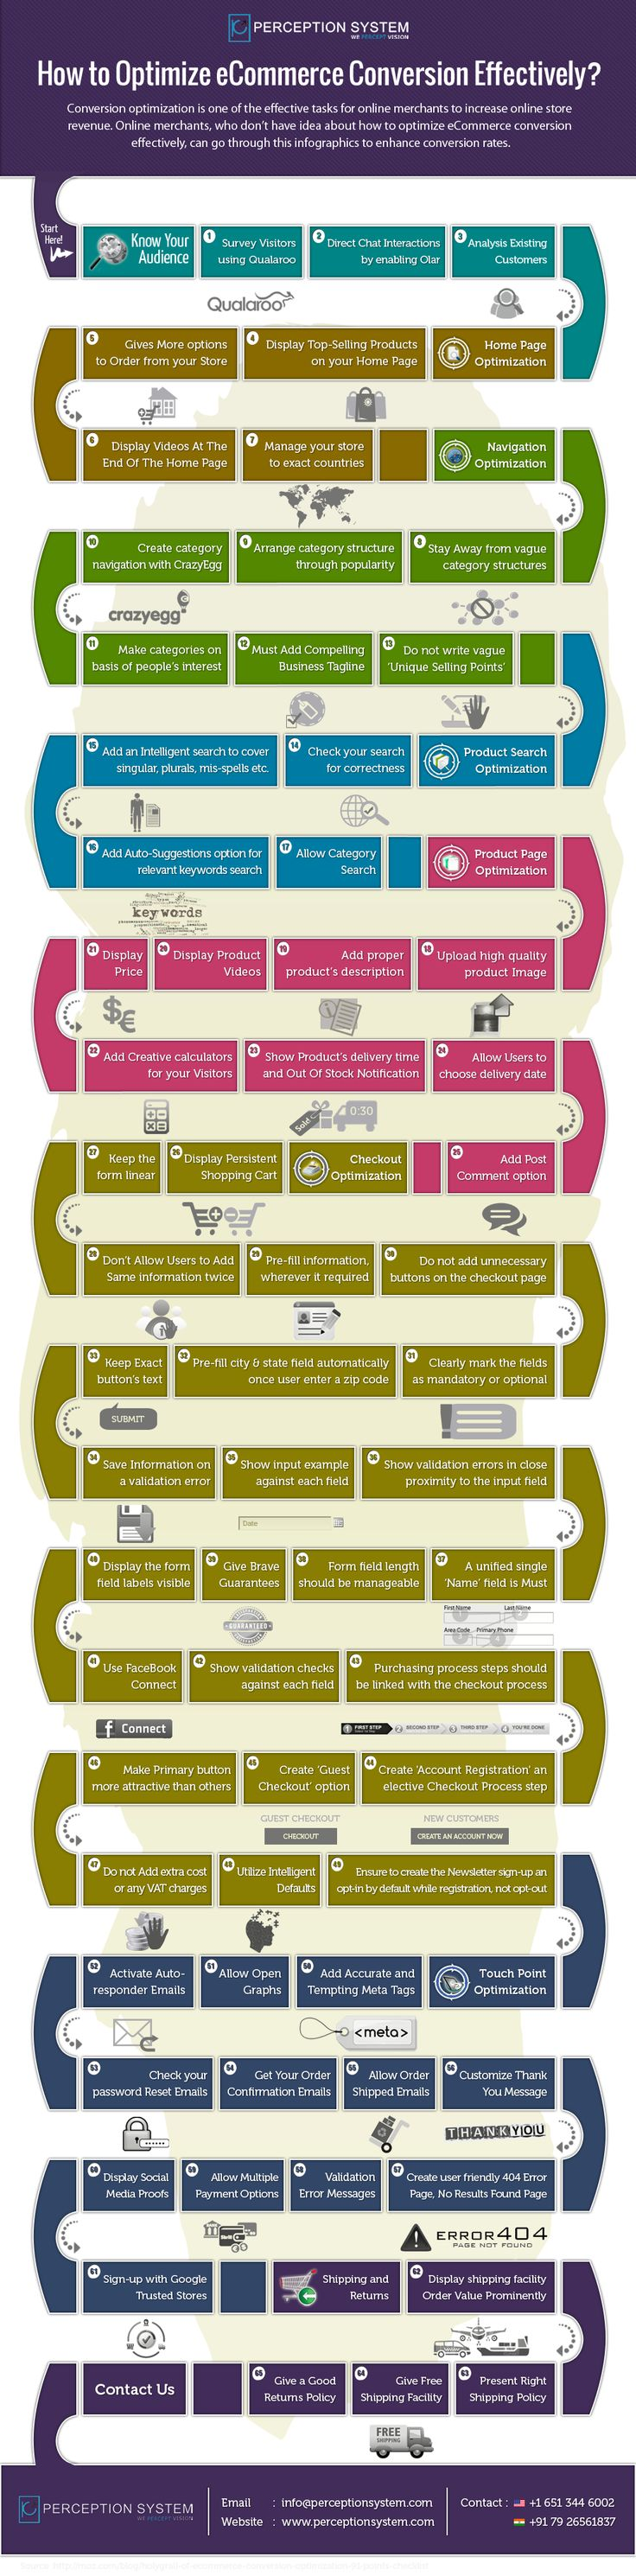 How to Optimize #eCommerce Conversion Effectively? #infographic